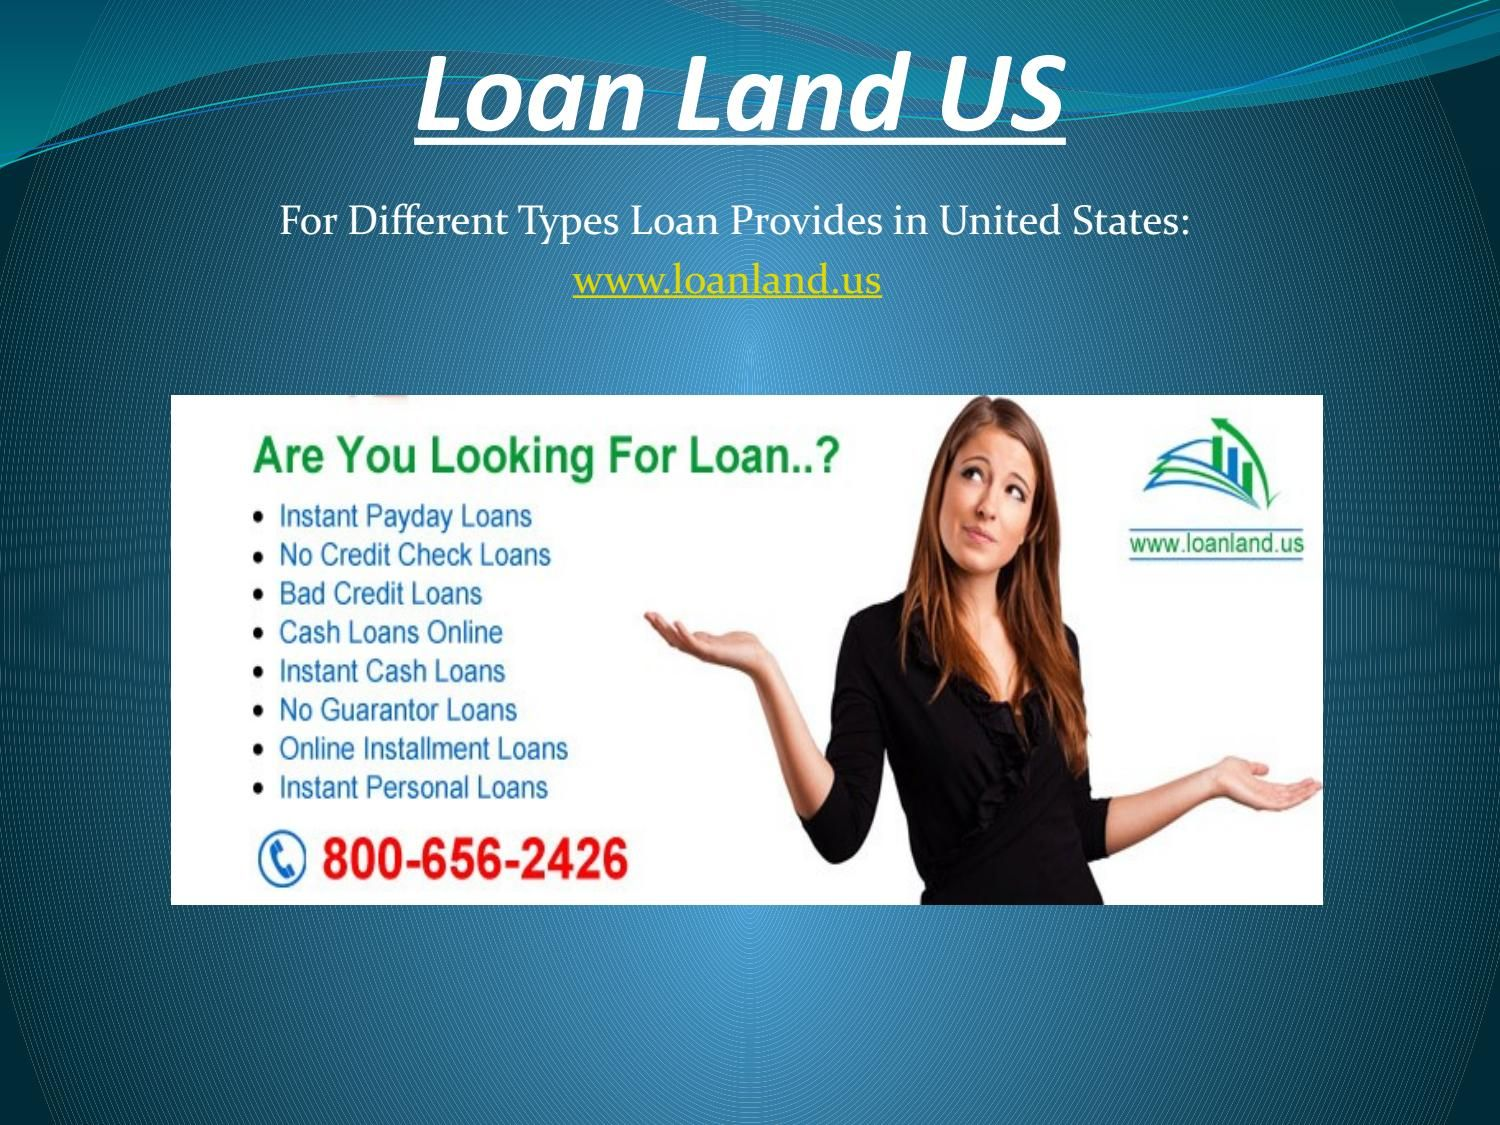 Cash Loans Offered On Best Deal With No Credit Check Option Cash Loans Payday Loans Instant Payday Loans